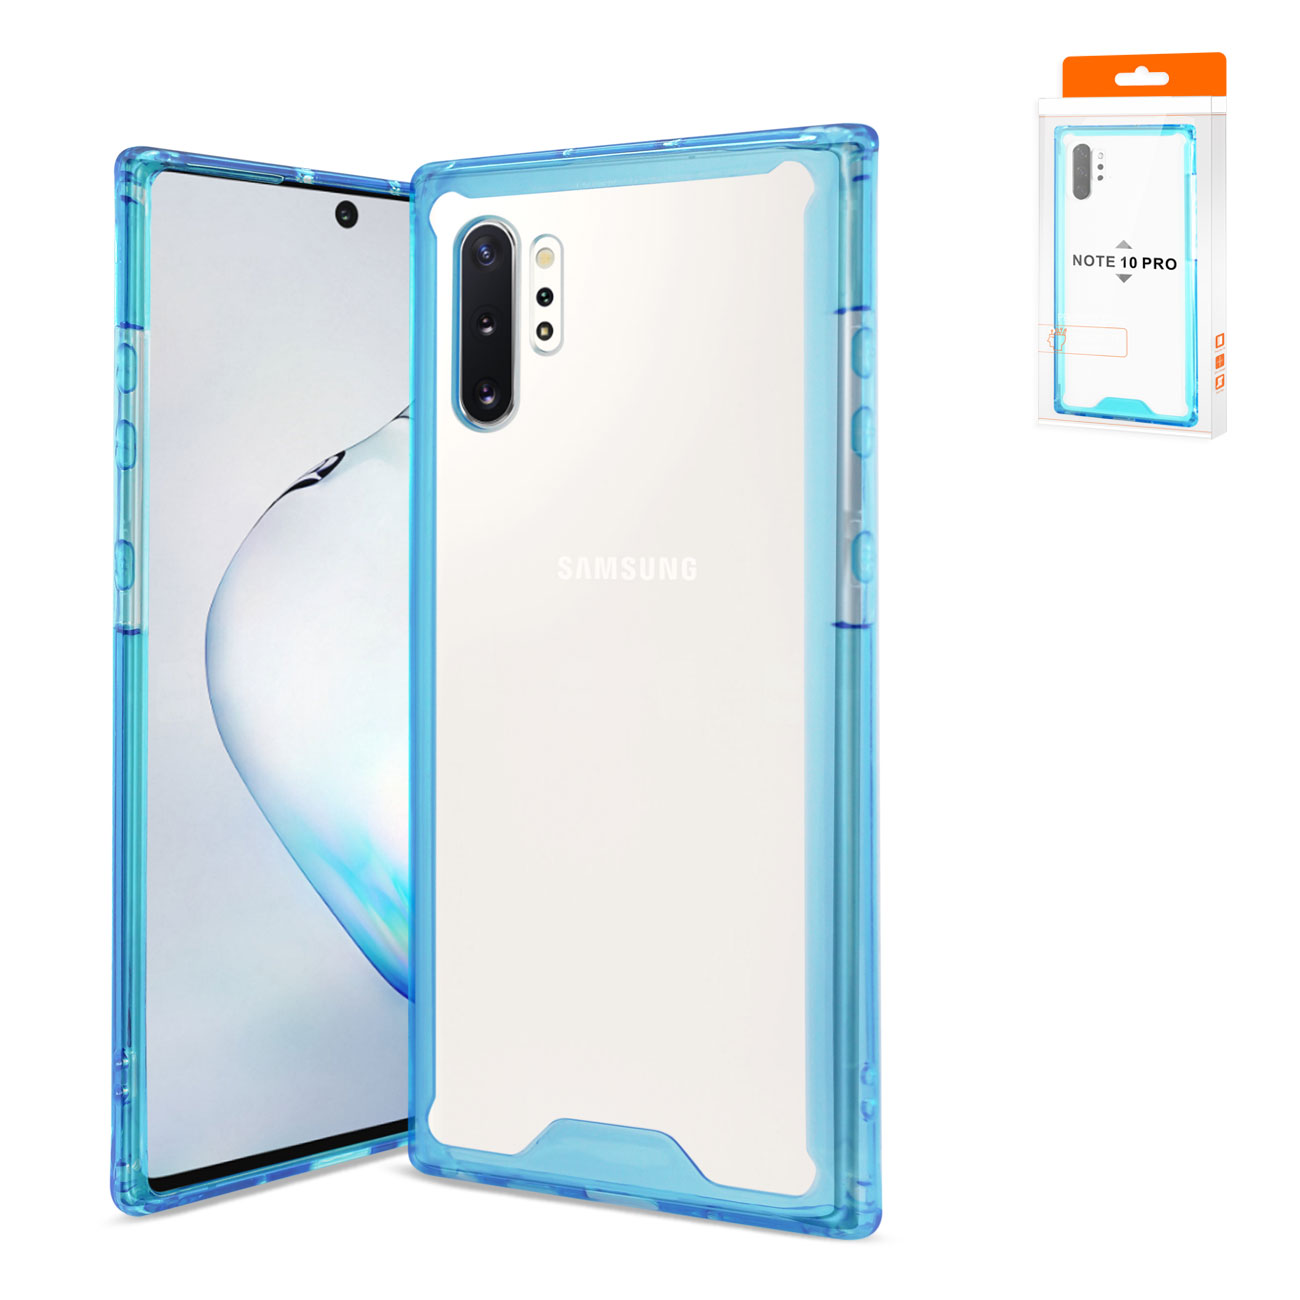 SAMSUNG GALAXY NOTE 10 PLUS High Quality TPU Case In Blue